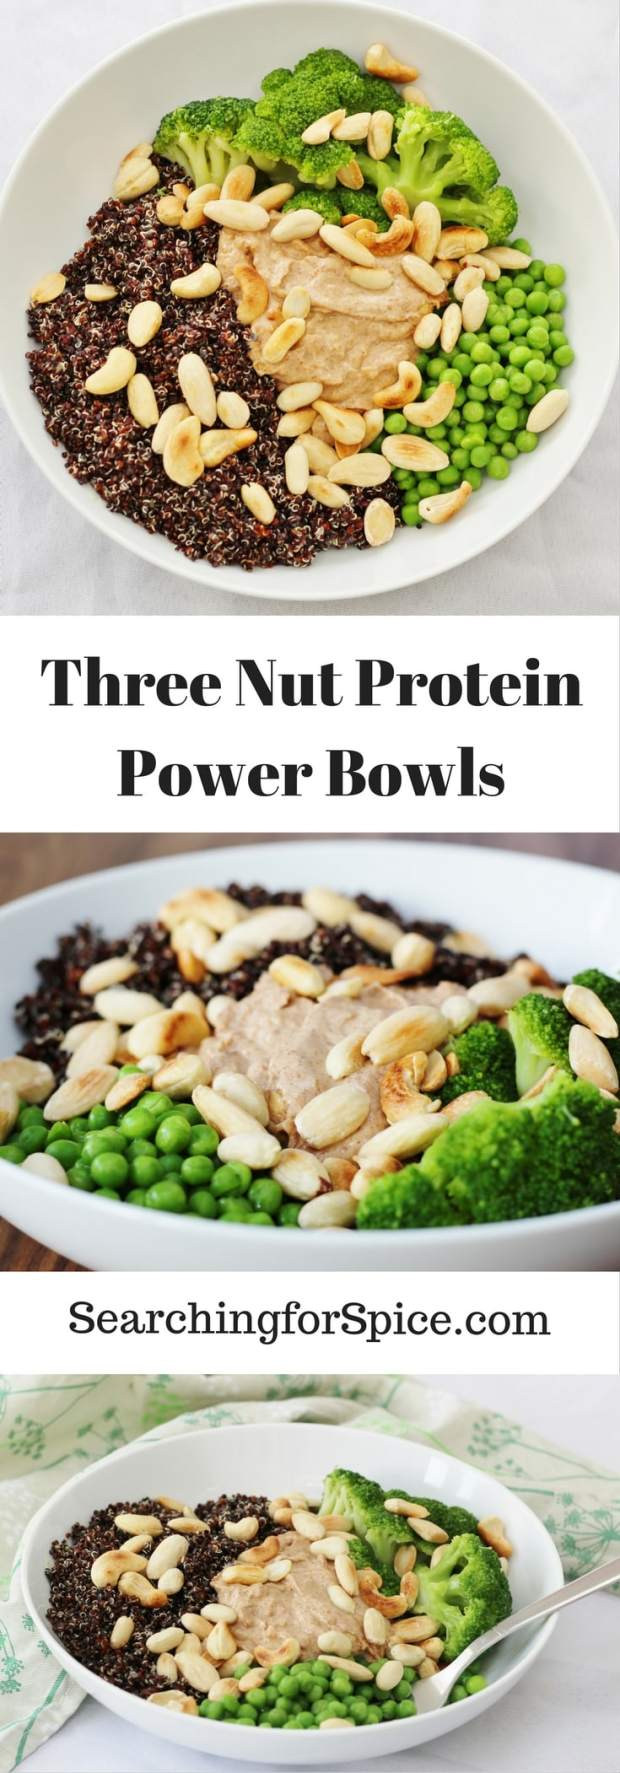 Three Nut Protein Power Bowls